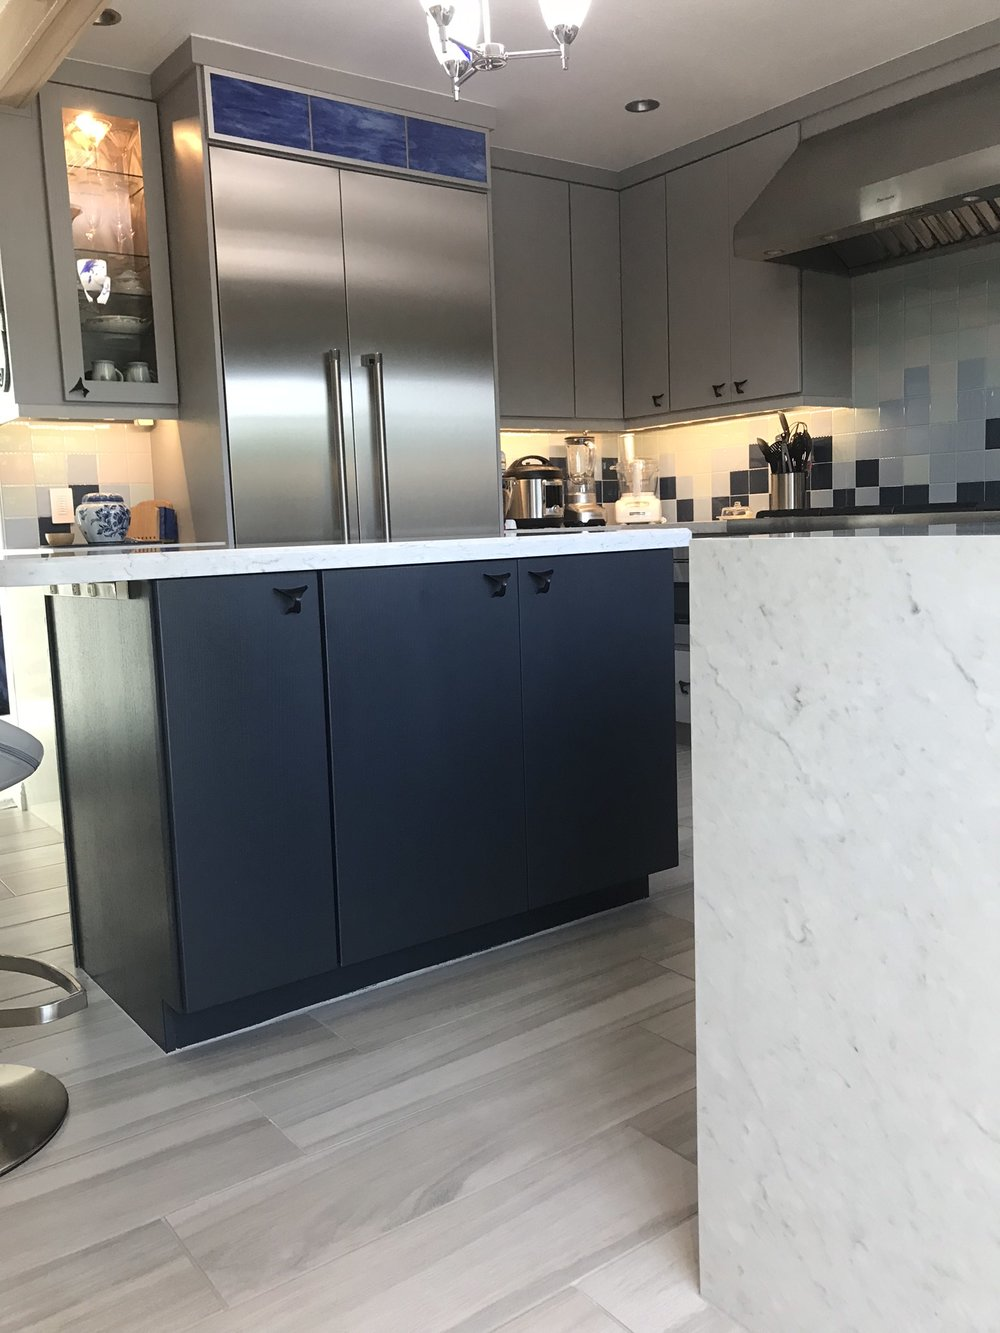 Kitchen decor ideas: I saw this cabinet contrast immediately in my mind when speaking with client in the first meeting. …We are BOTH so glad they trusted my vision!